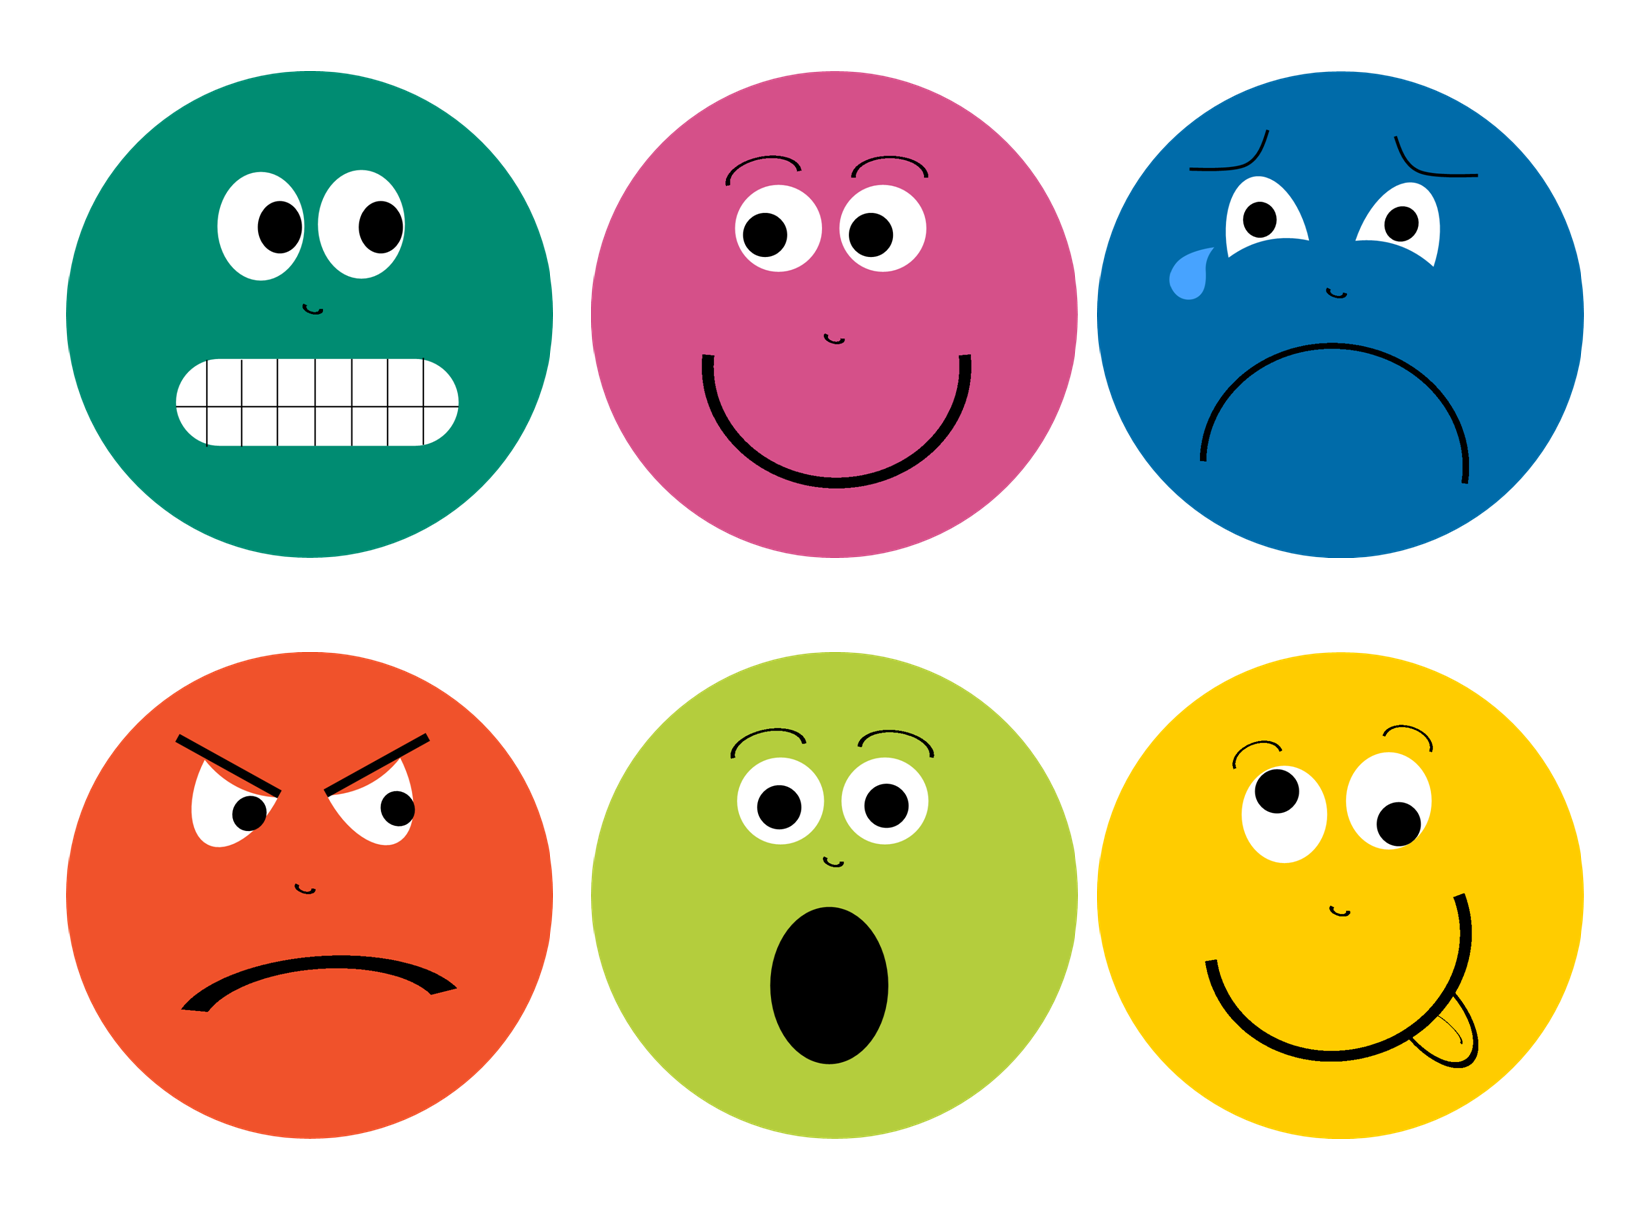 Feelings Faces Printable - PNG Emotions Faces